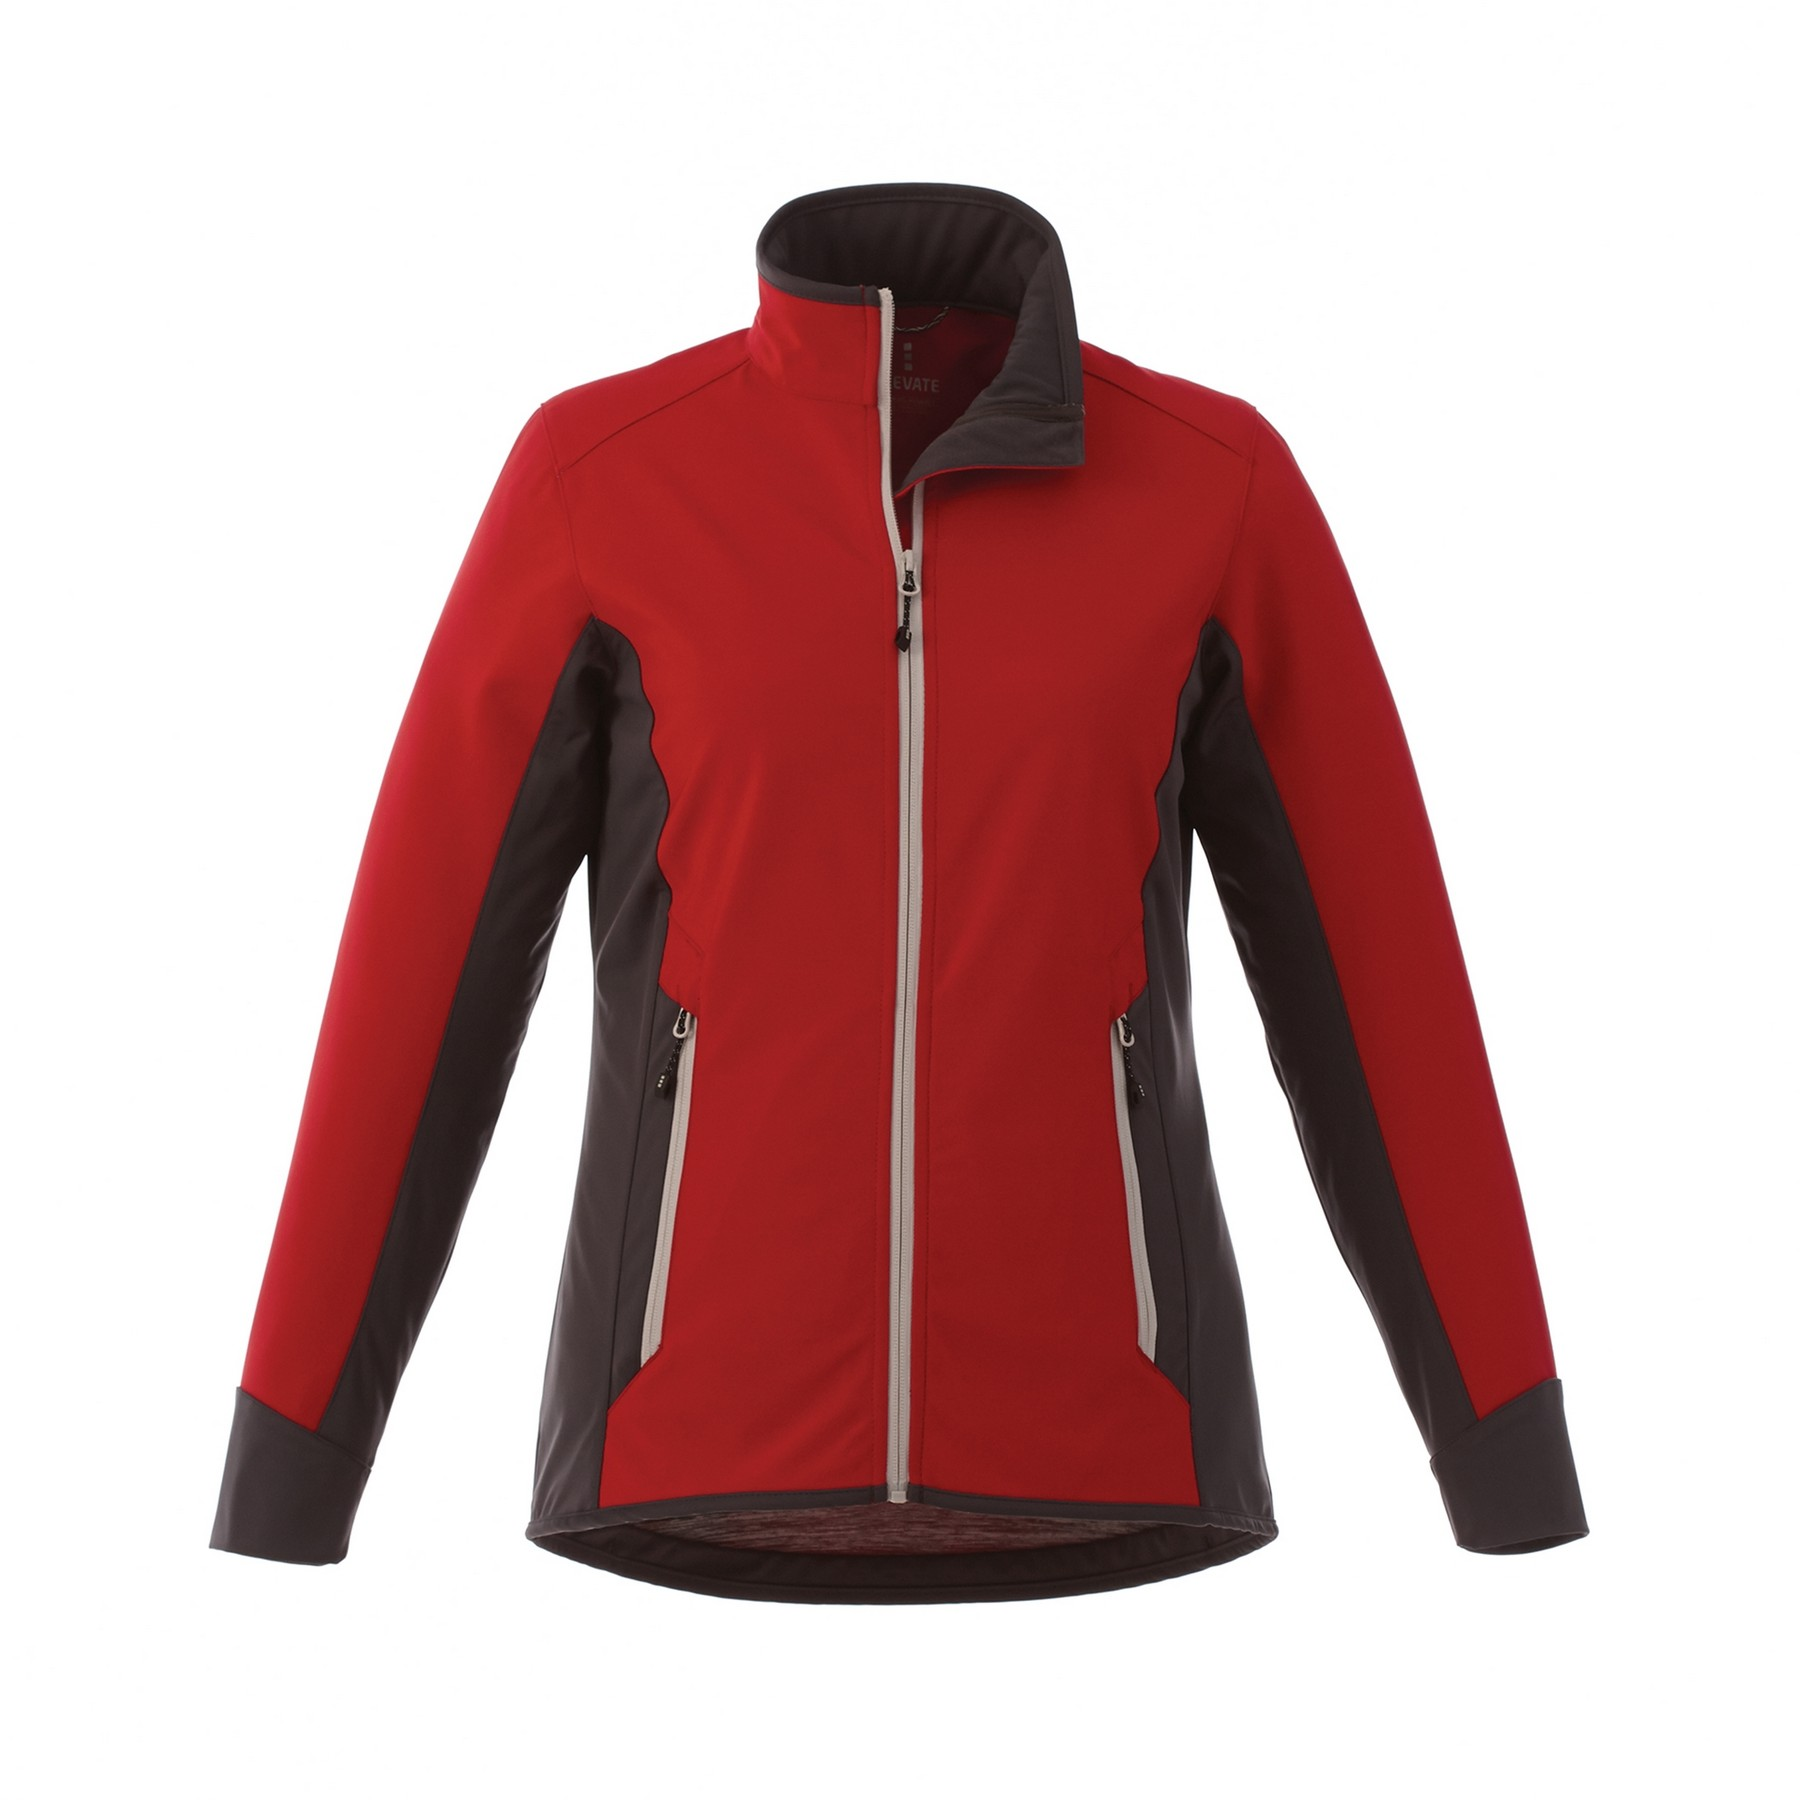 Sopris Softshell Women's Jacket, #99535 - Embroidered